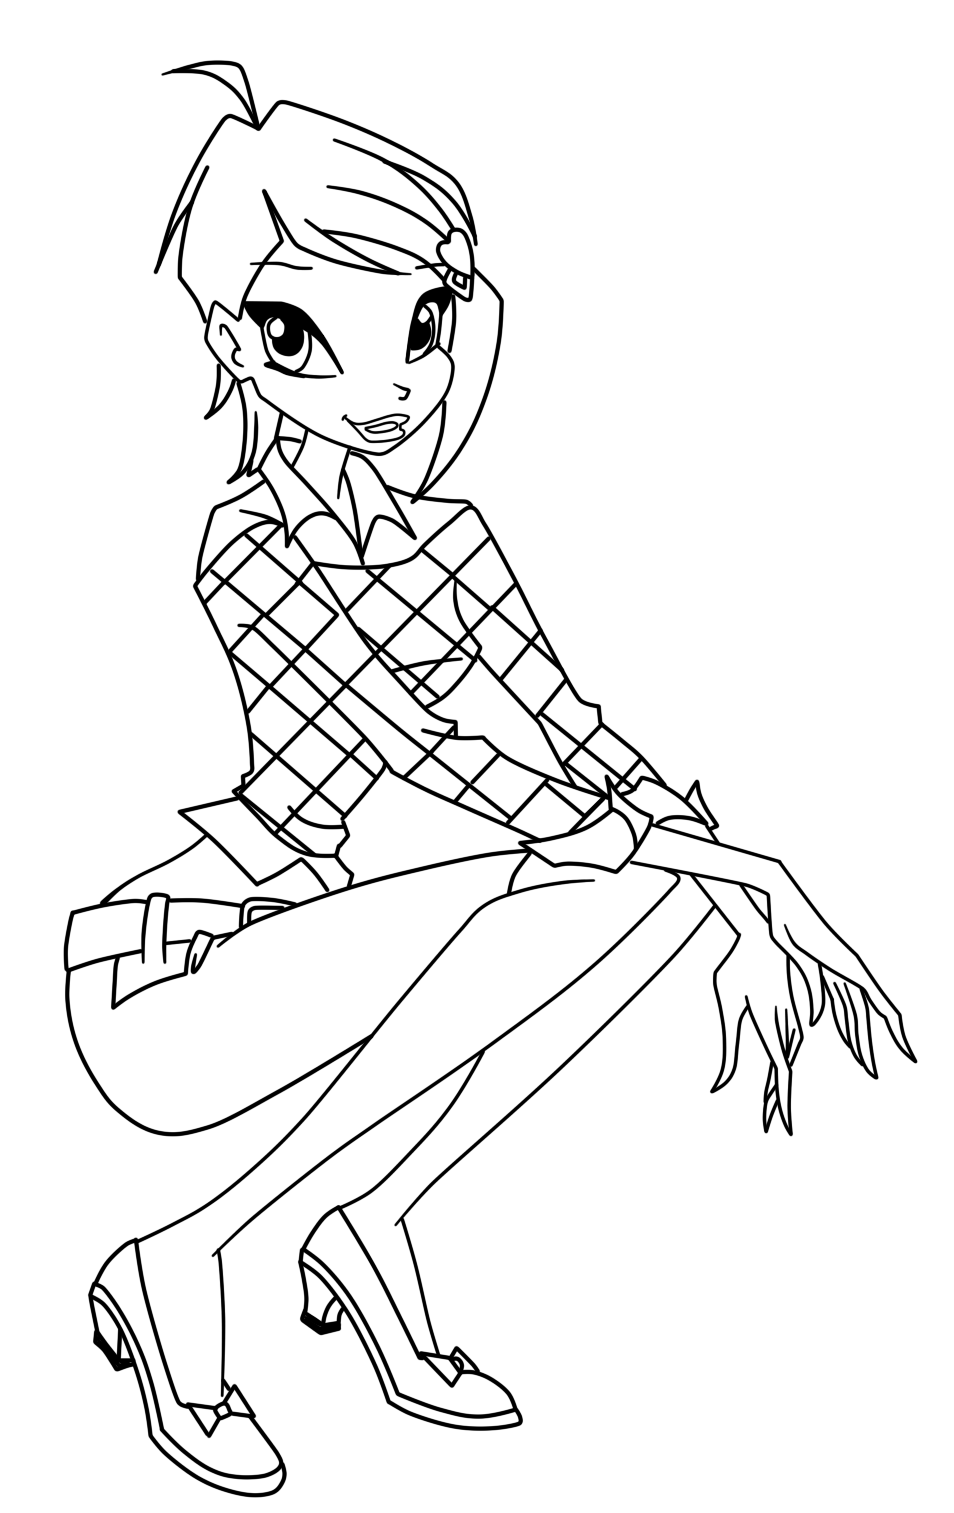 winx coloring page free printable winx coloring pages for kids cool2bkids page winx coloring